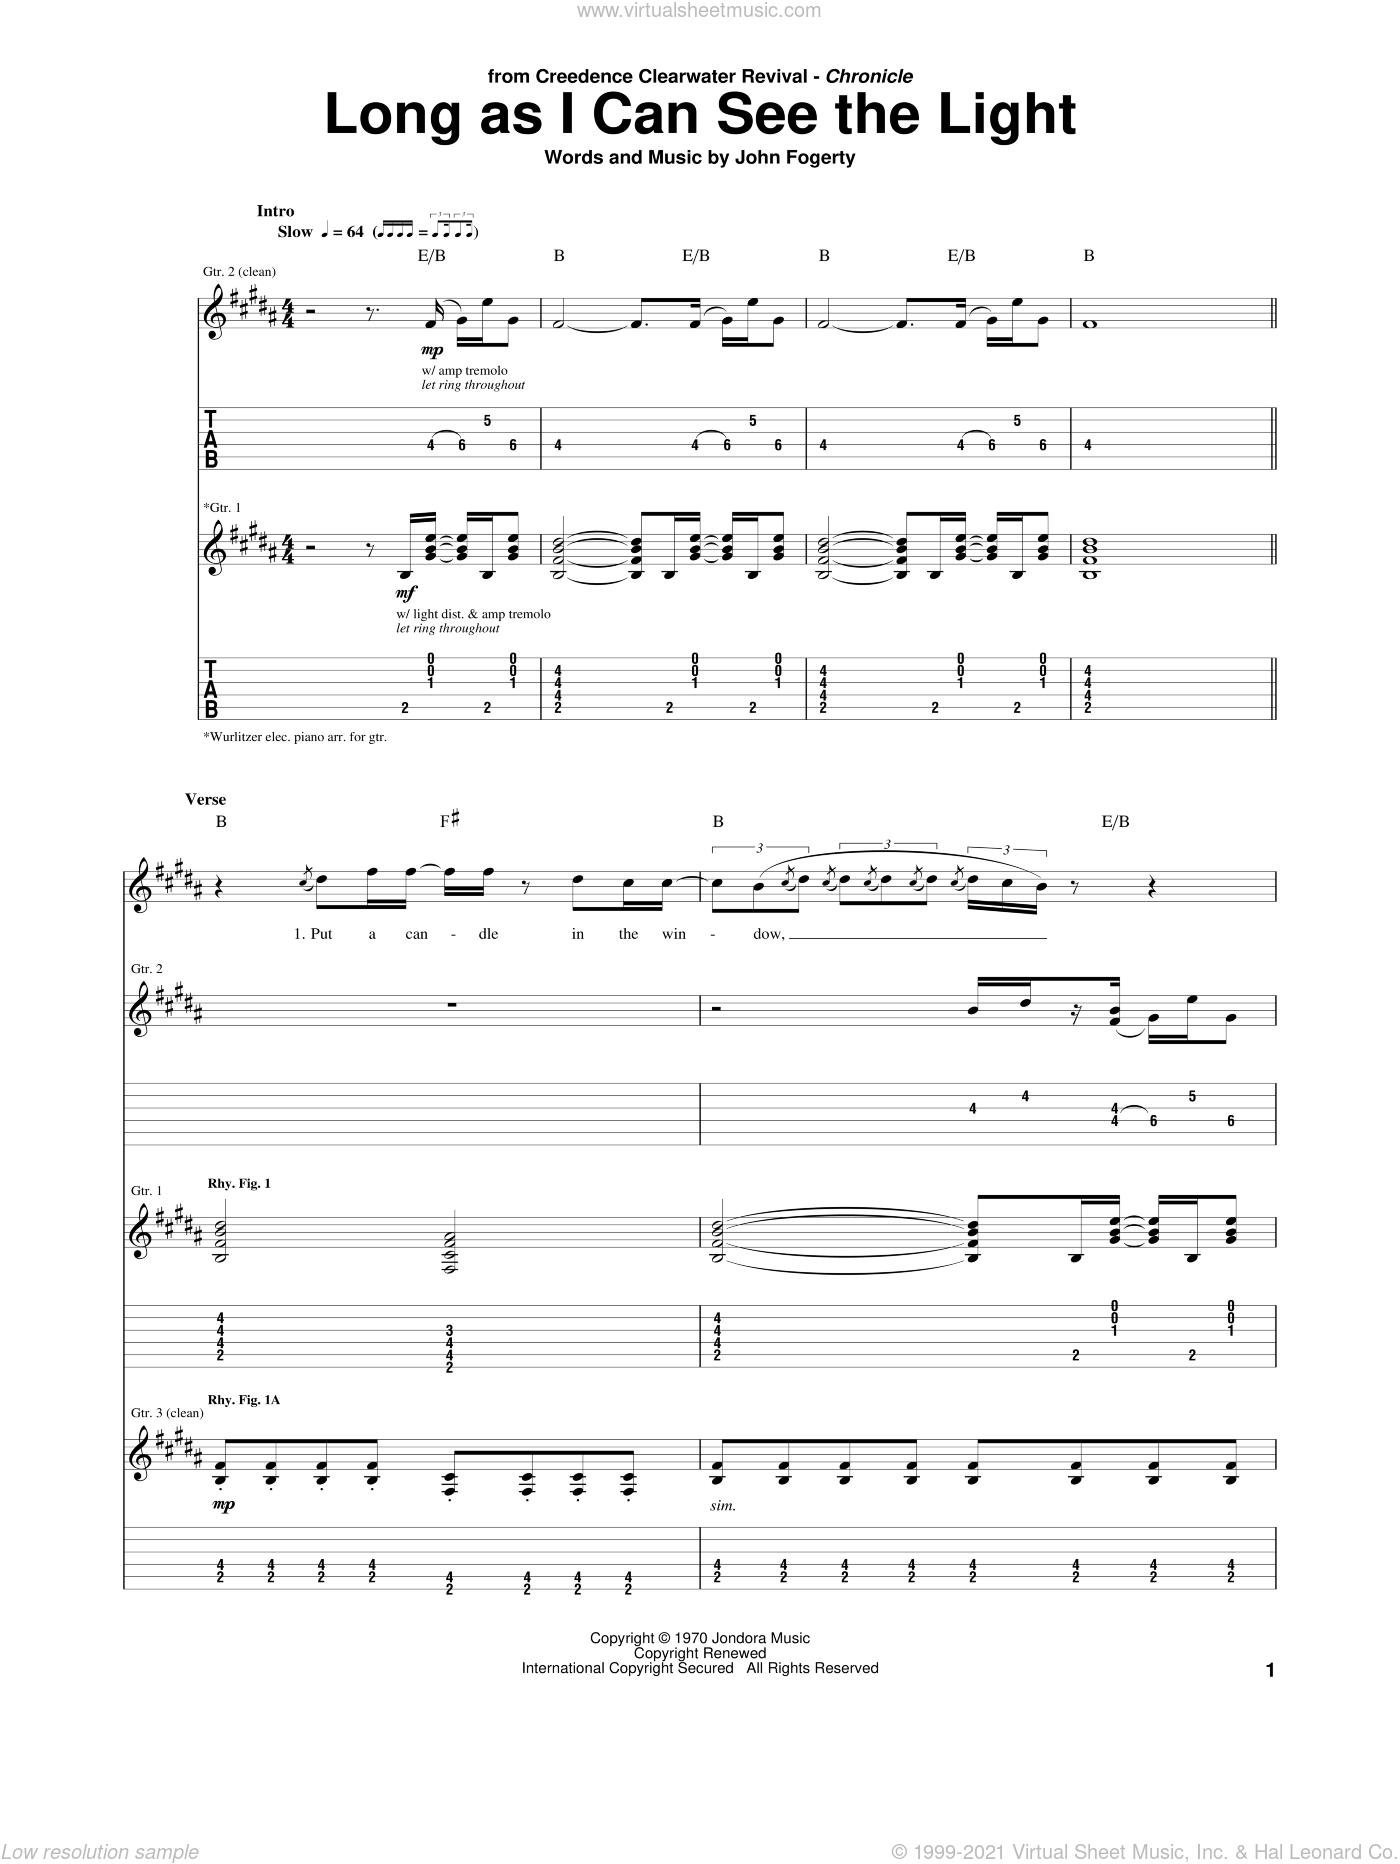 Long As I Can See The Light sheet music for guitar (tablature) by Creedence Clearwater Revival and John Fogerty, intermediate